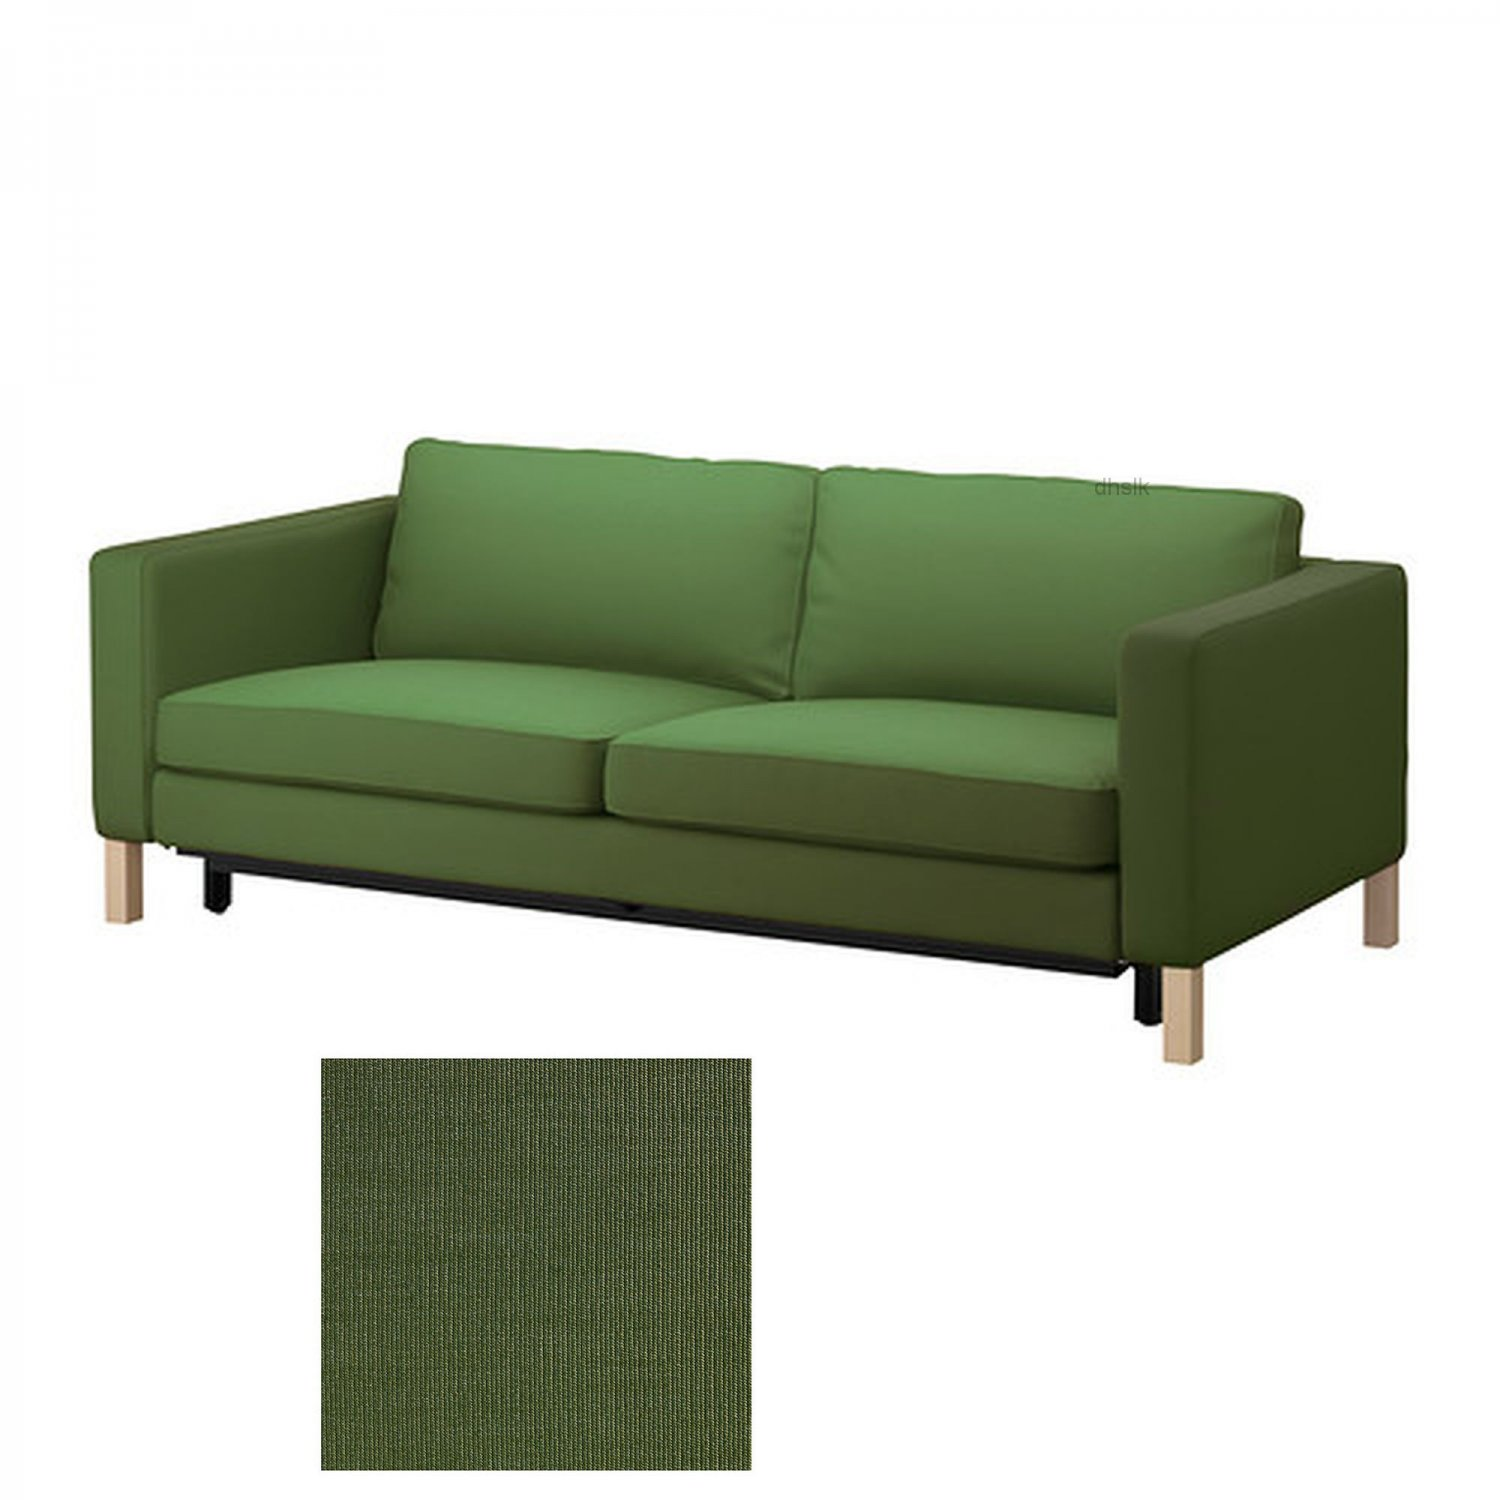 Super Ikea Karlstad Sofa Barn Sofa Gmtry Best Dining Table And Chair Ideas Images Gmtryco